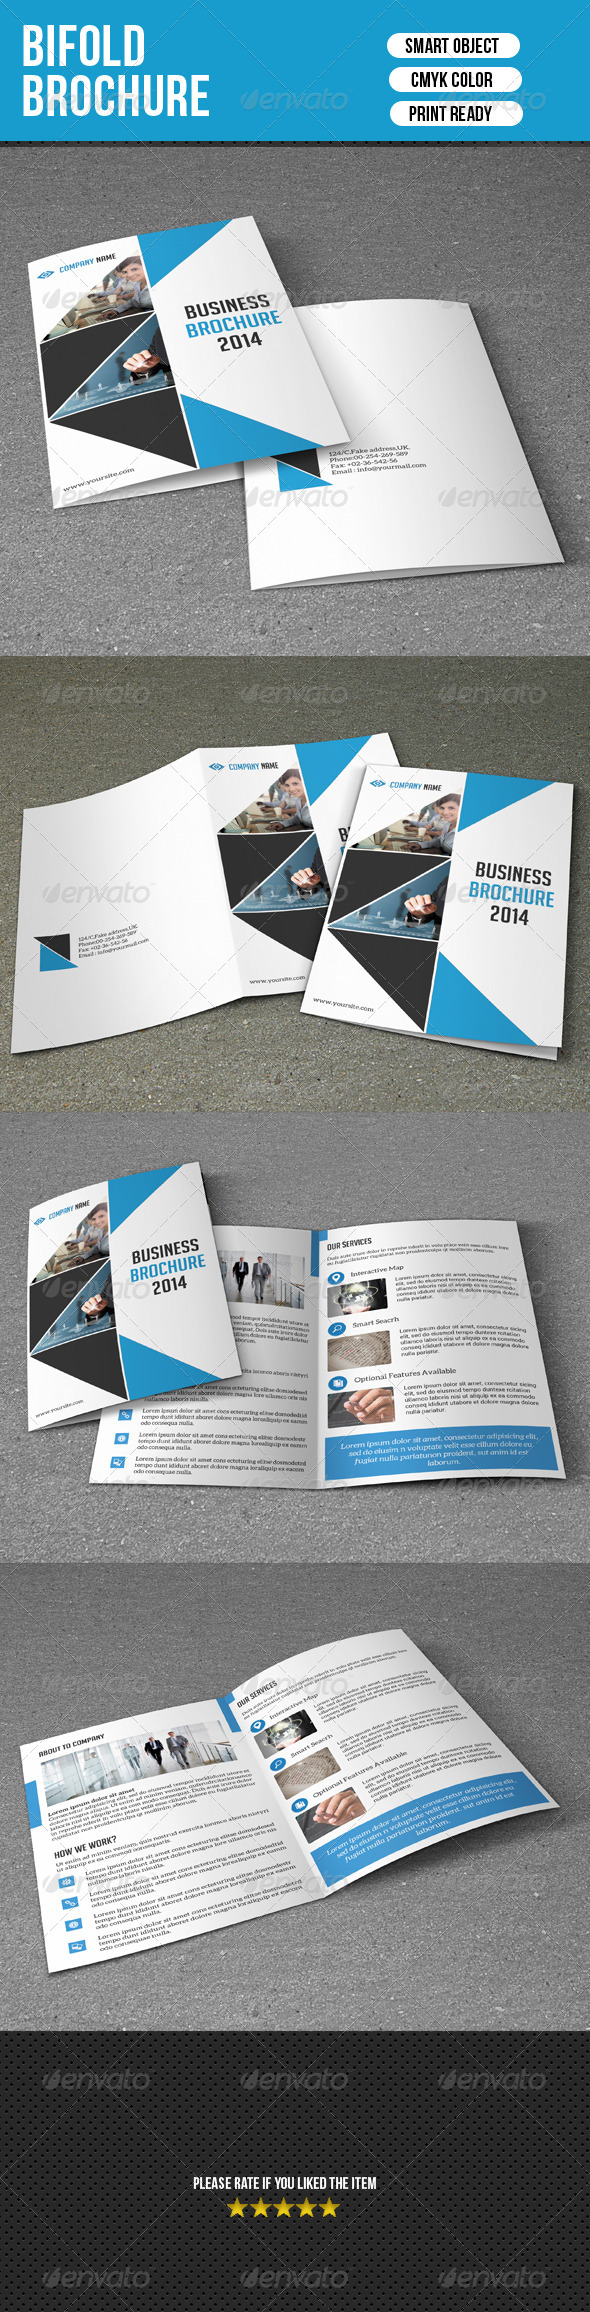 Bifold Business Brochure